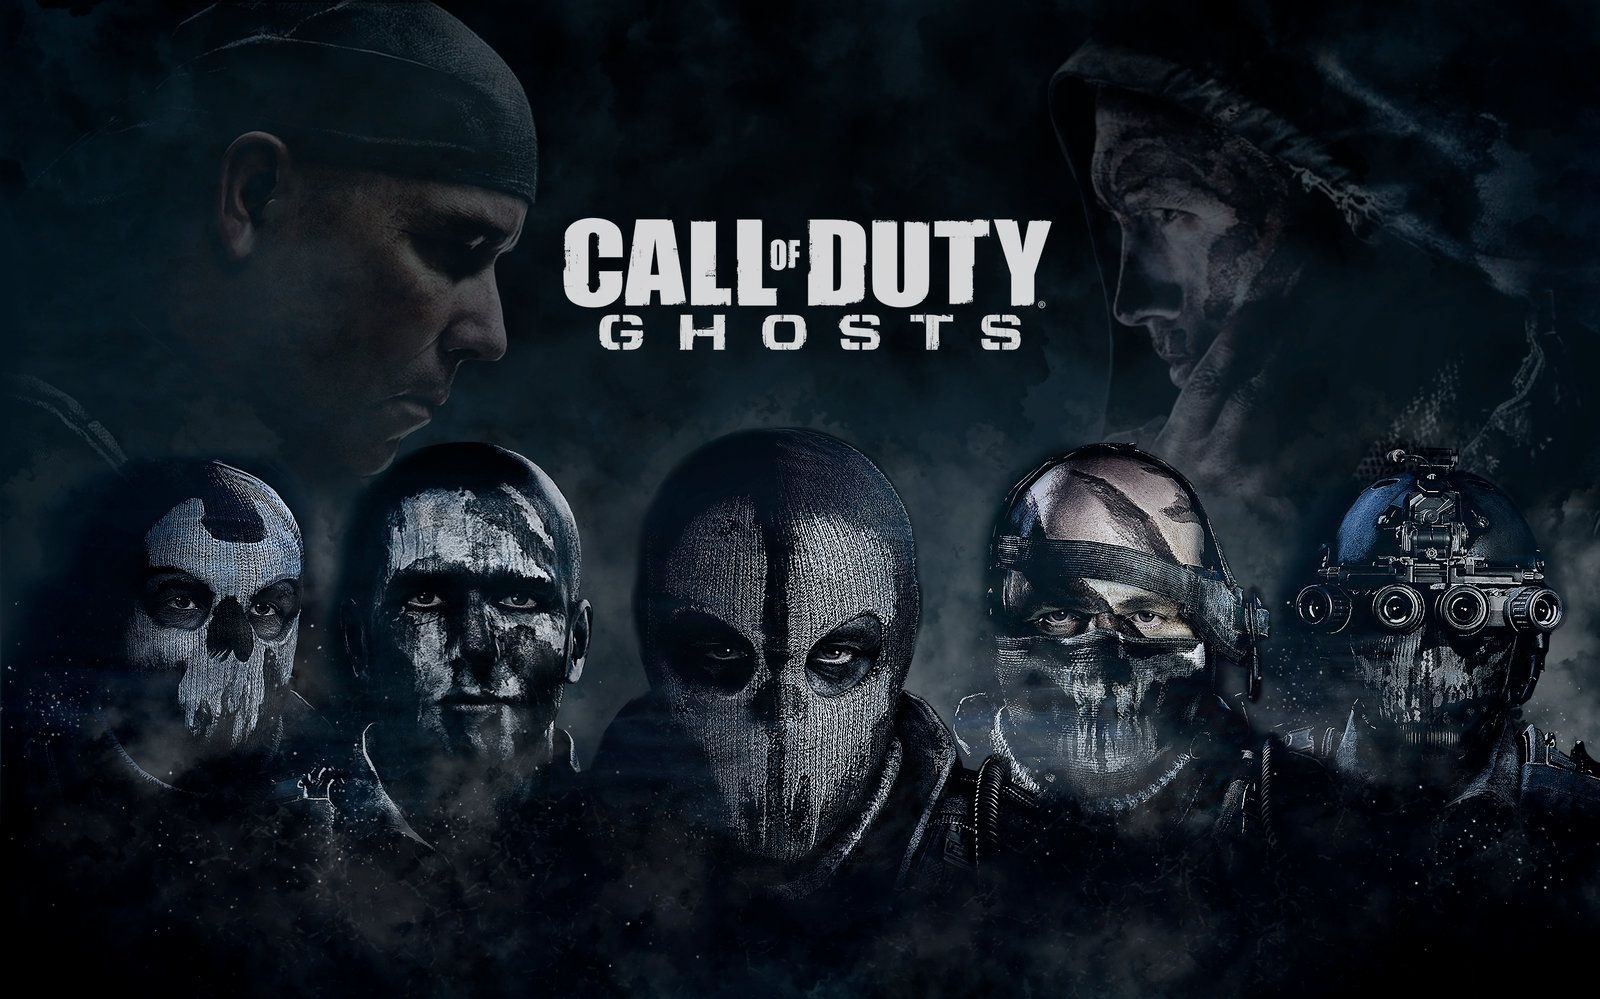 call-of-duty-ghost-wallpaper-2 | call of duty ghosts wallpaper